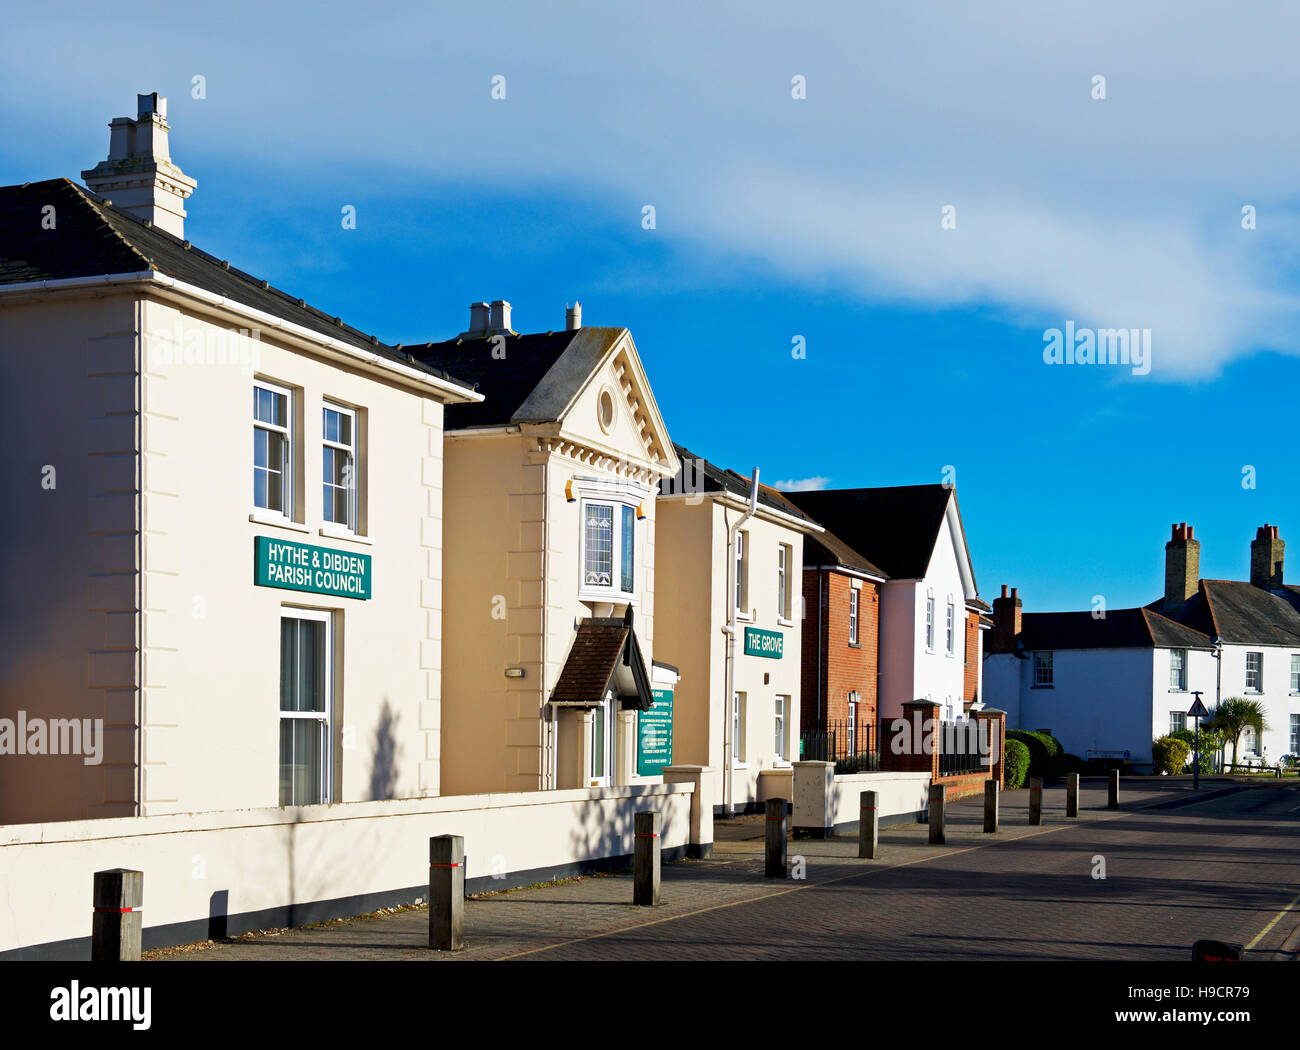 Council offices in Hythe, Hampshire, England UK - Stock Image